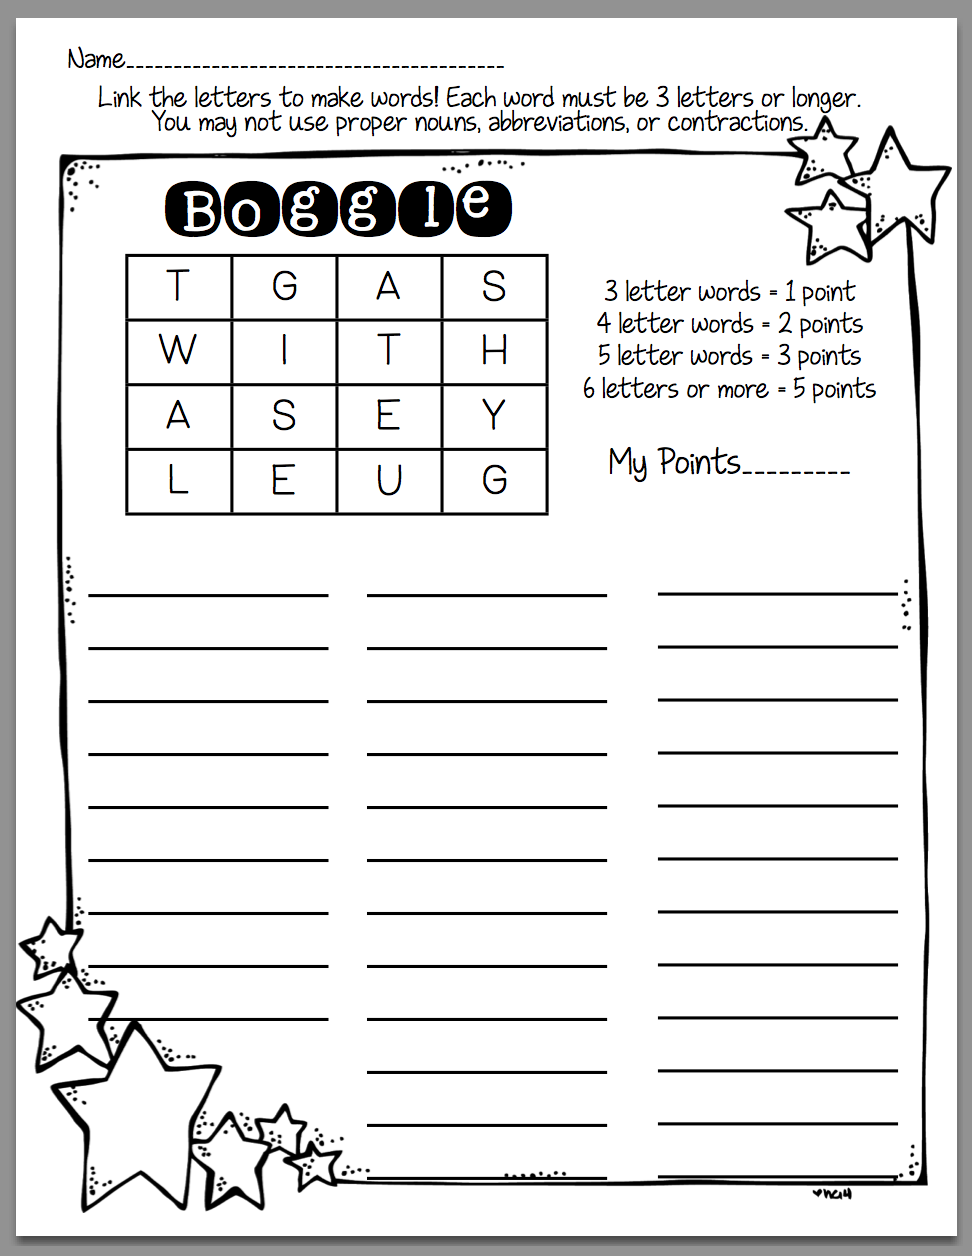 How To Use Boggle In Word Work Sunny Days In Second Grade